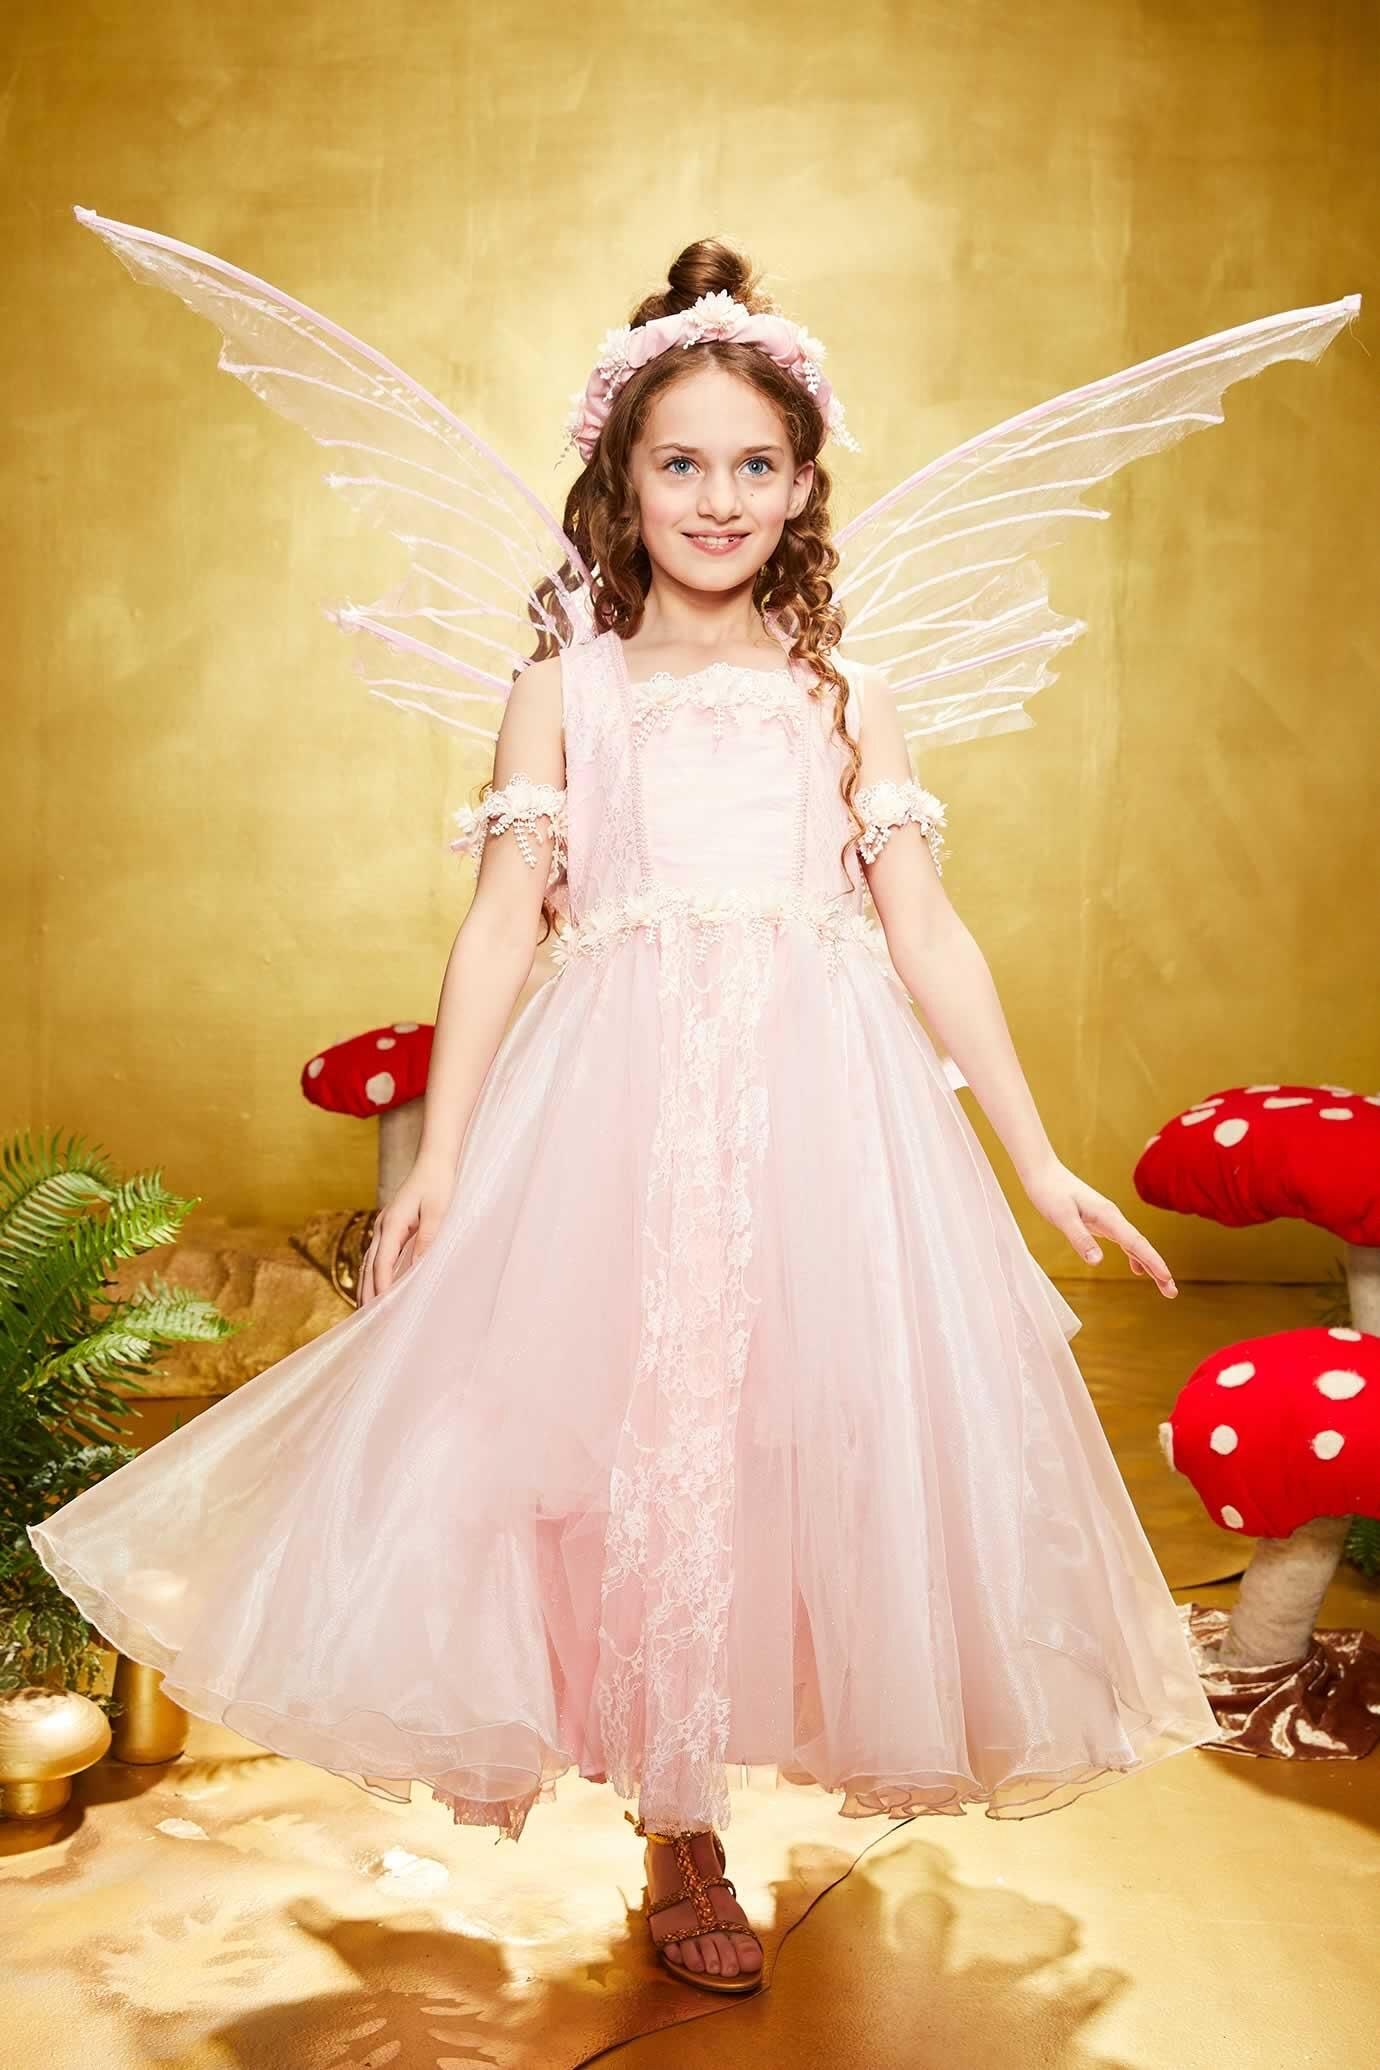 Sparkle Fairy Costume for Girls  Fairy costume for girl, Princess